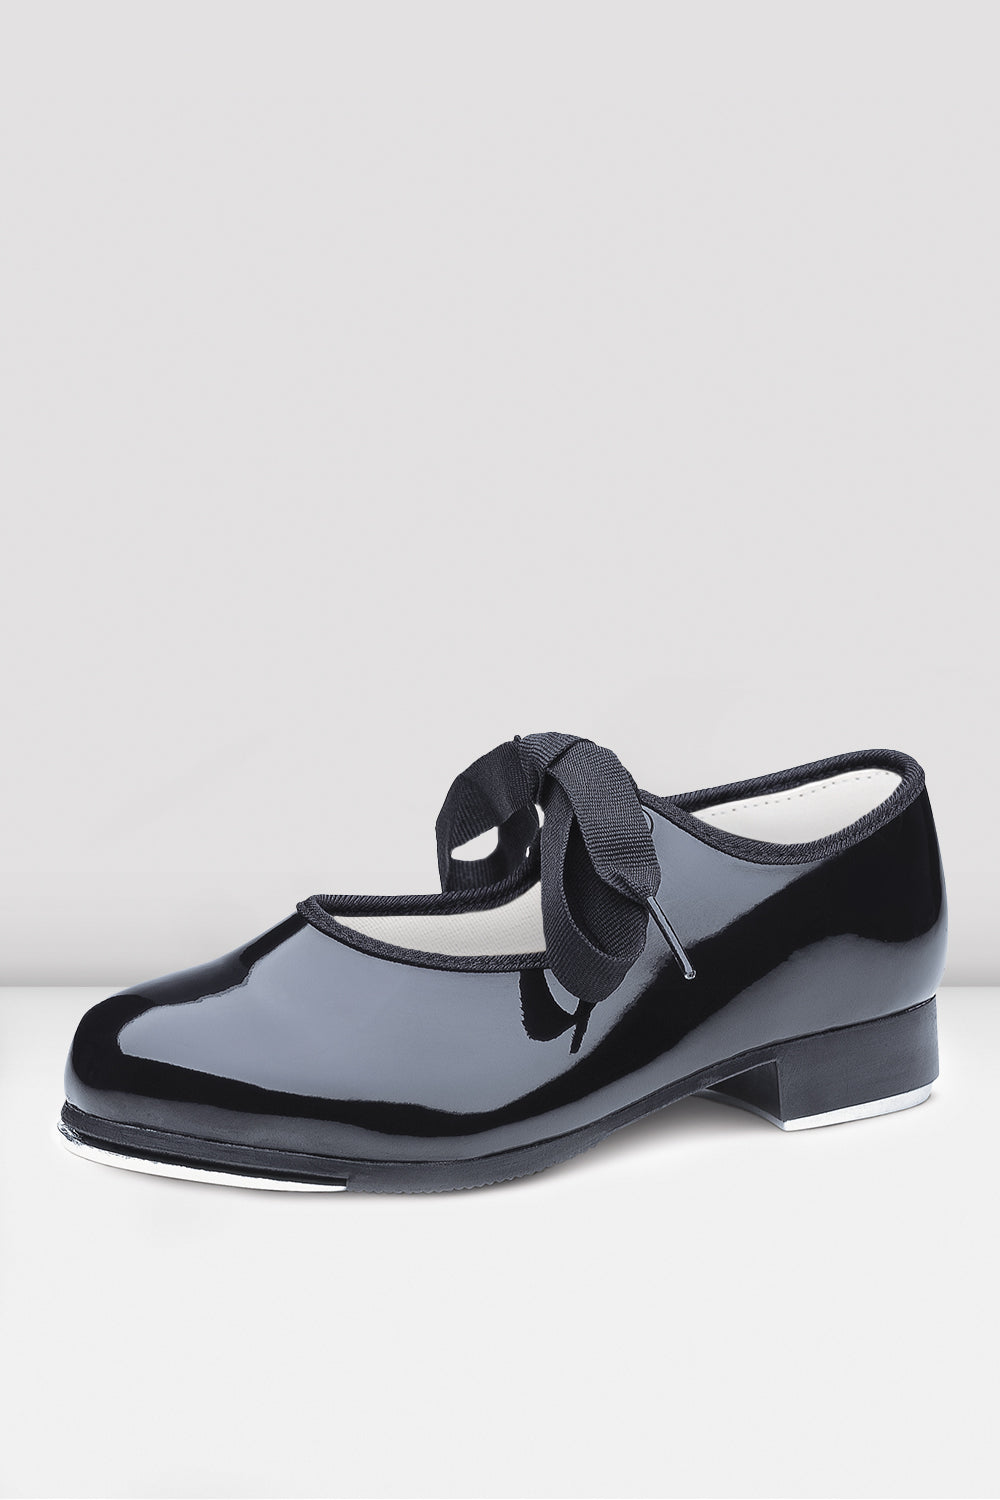 buy online new lifestyle hot sale Girls Dance Now Student Tap Shoes, Black | BLOCH USA